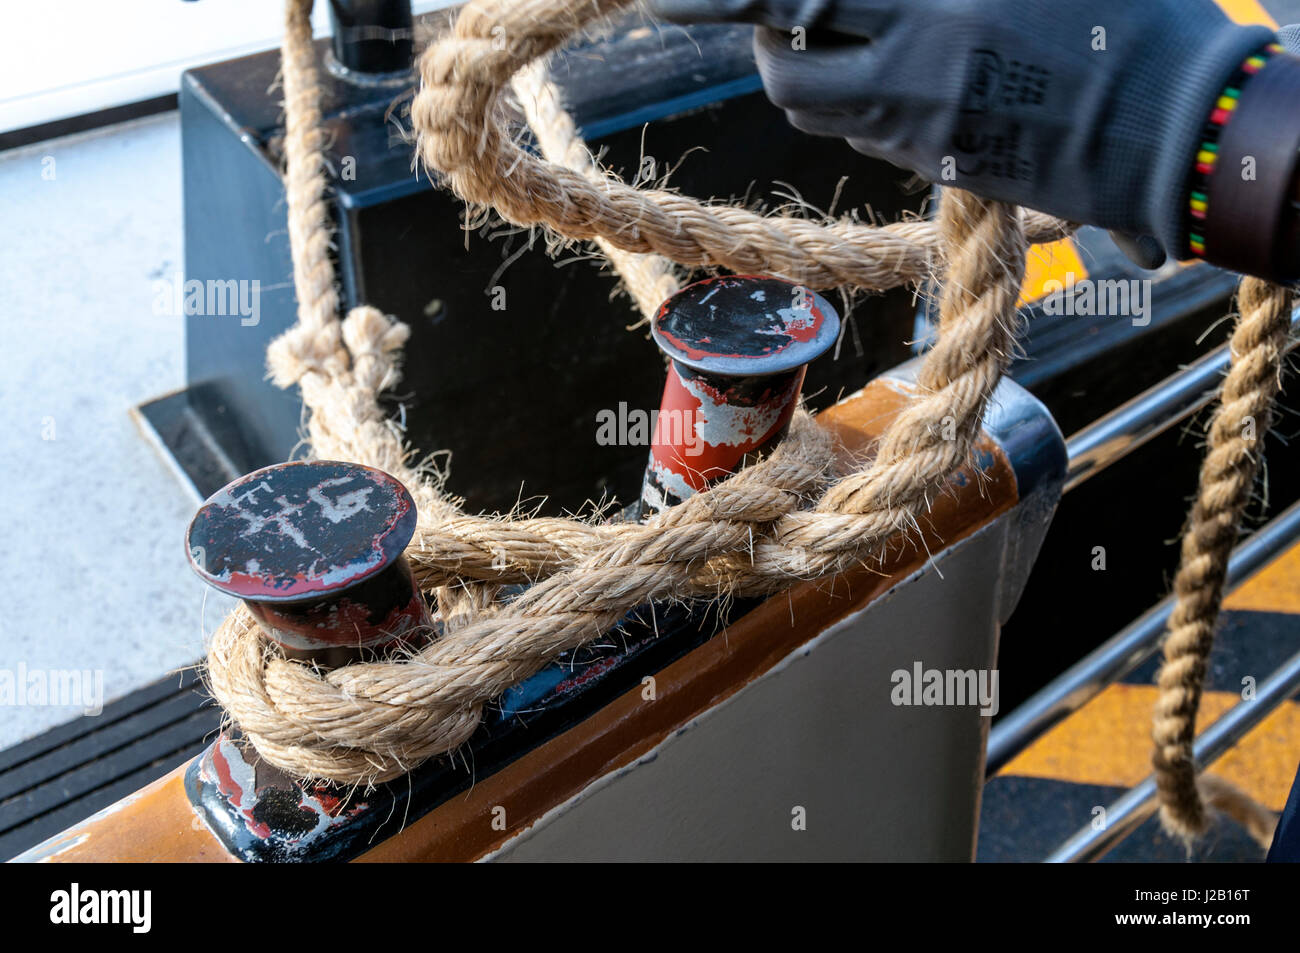 Mooring a Vaporetto water bus on Grand Canal in Venice, Italy - Stock Image